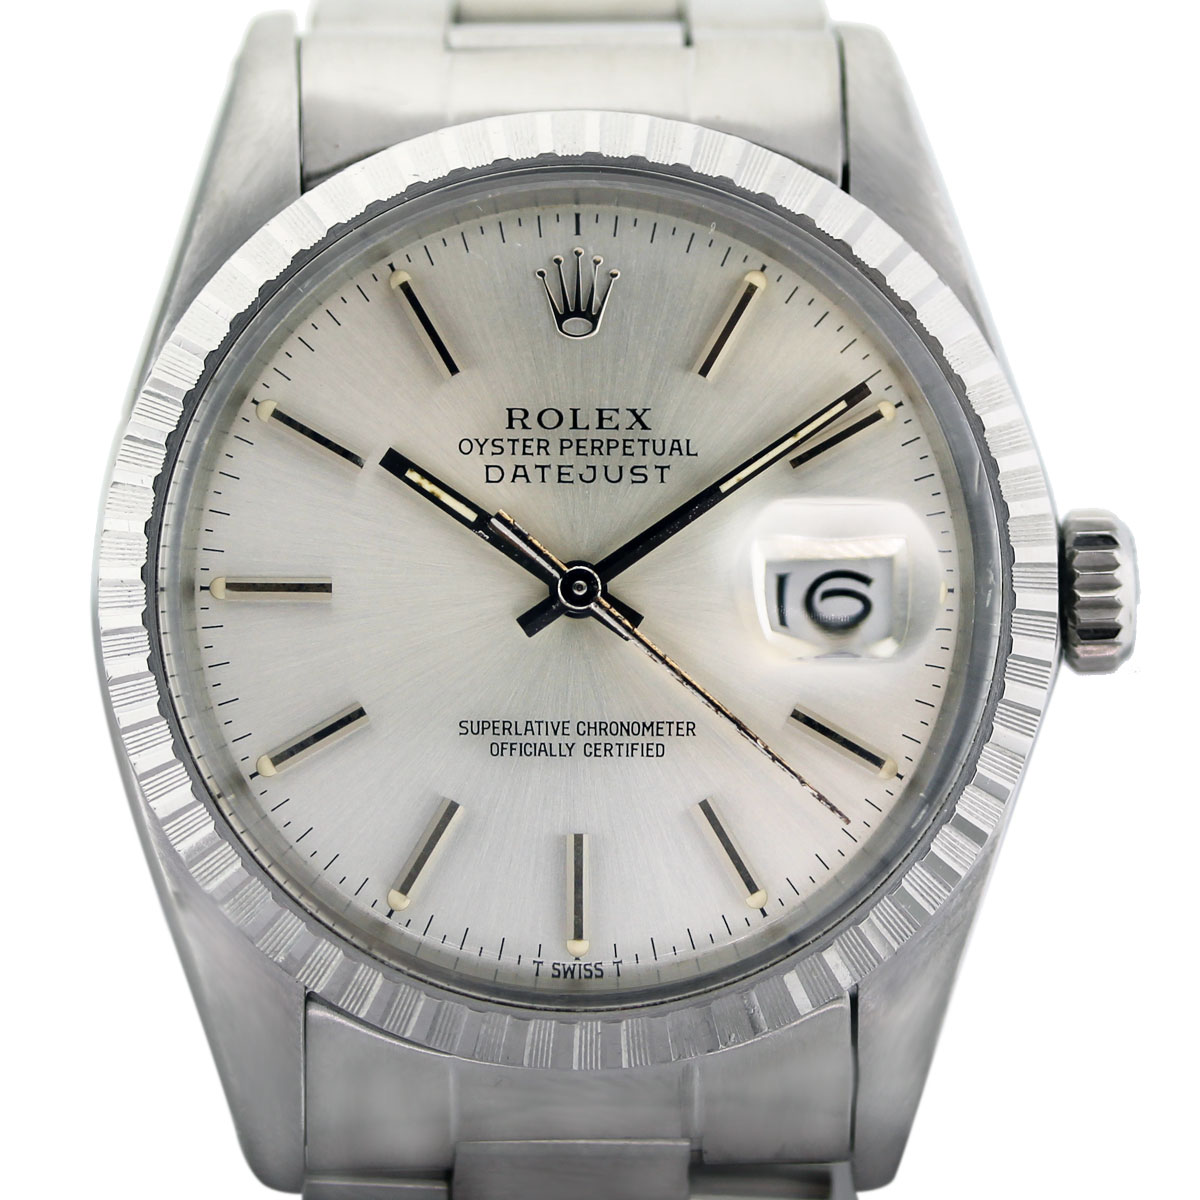 Rolex Datejust 16030 Stainless Steel Silver Dial Oyster Perpetual Watch